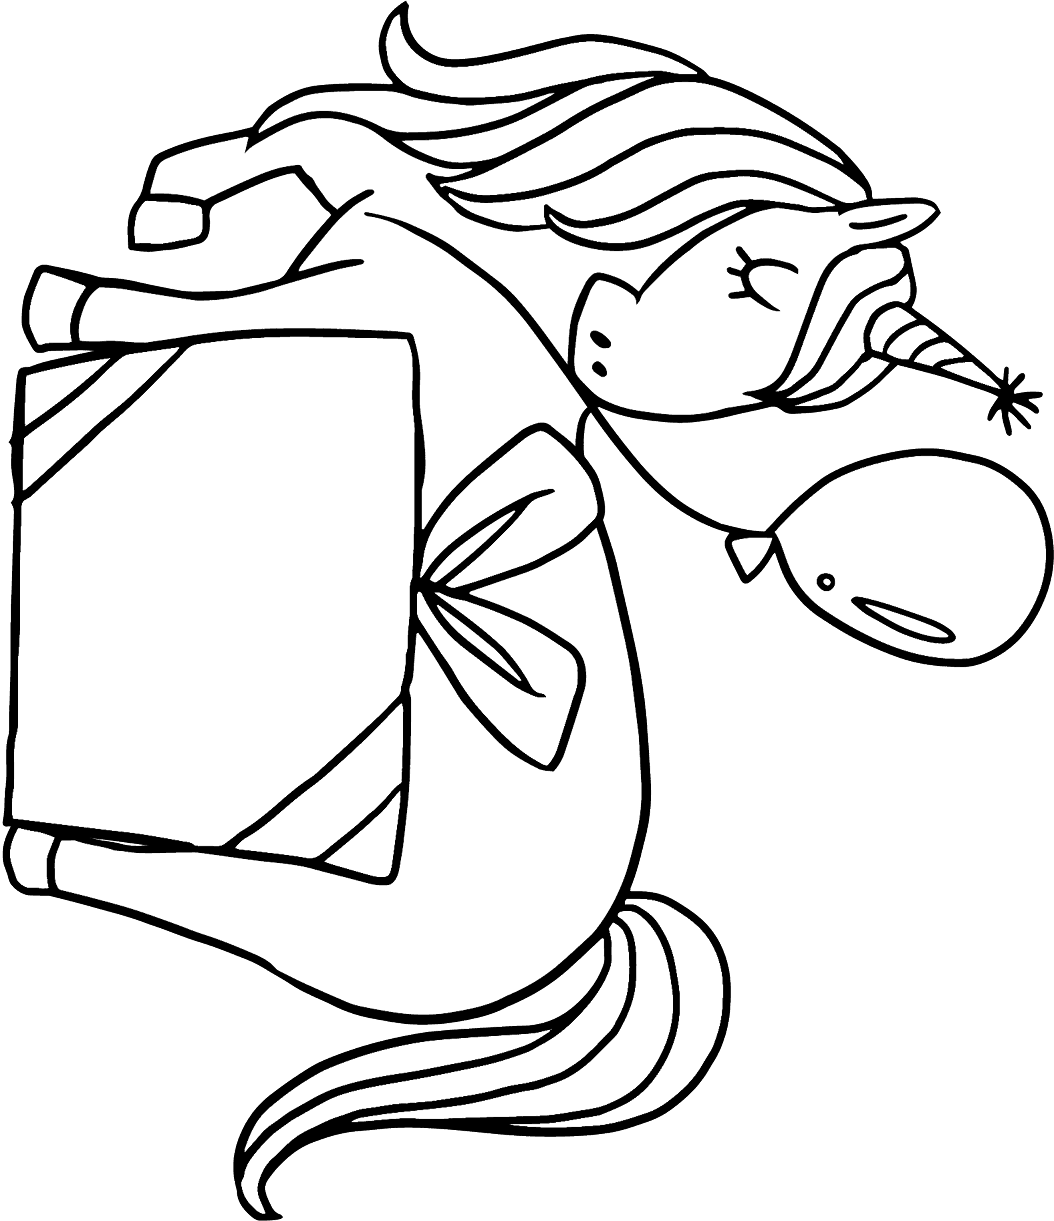 happy birthday unicorn coloring pages 55 best happy birthday coloring pages free printable pdfs pages unicorn coloring birthday happy